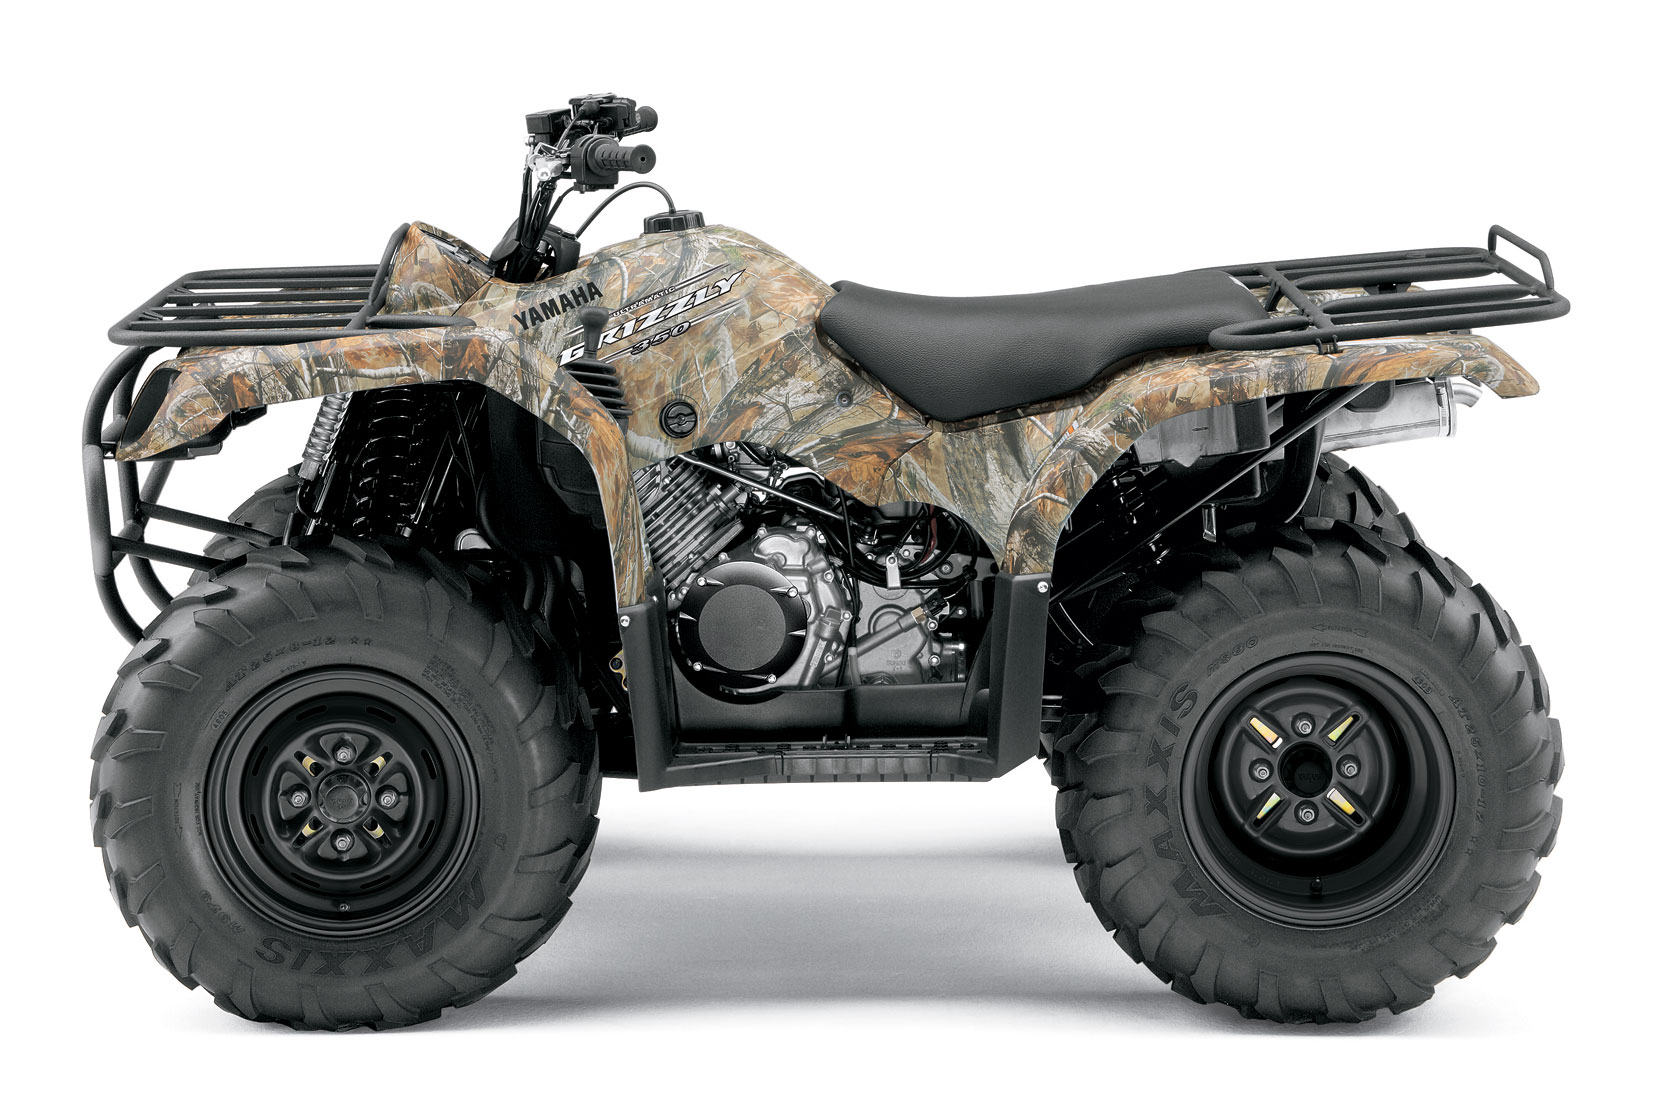 yamaha grizzly 350 4x4 specs 2010 2011 autoevolution. Black Bedroom Furniture Sets. Home Design Ideas